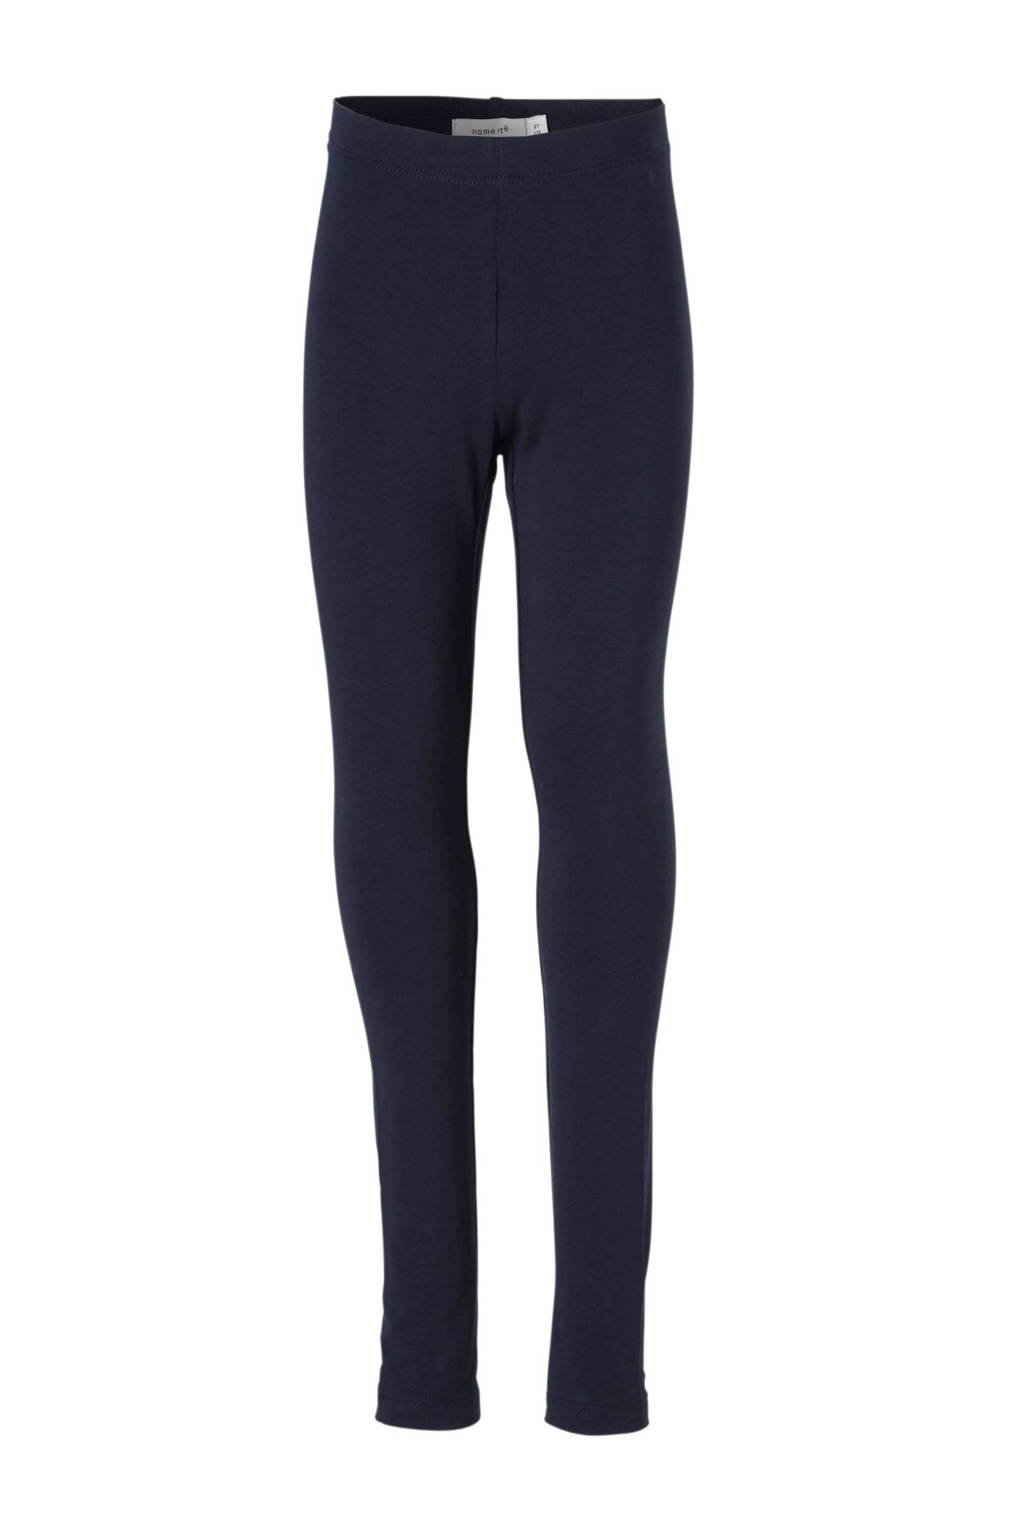 name it KIDS legging Vivian blauw, Donkerblauw